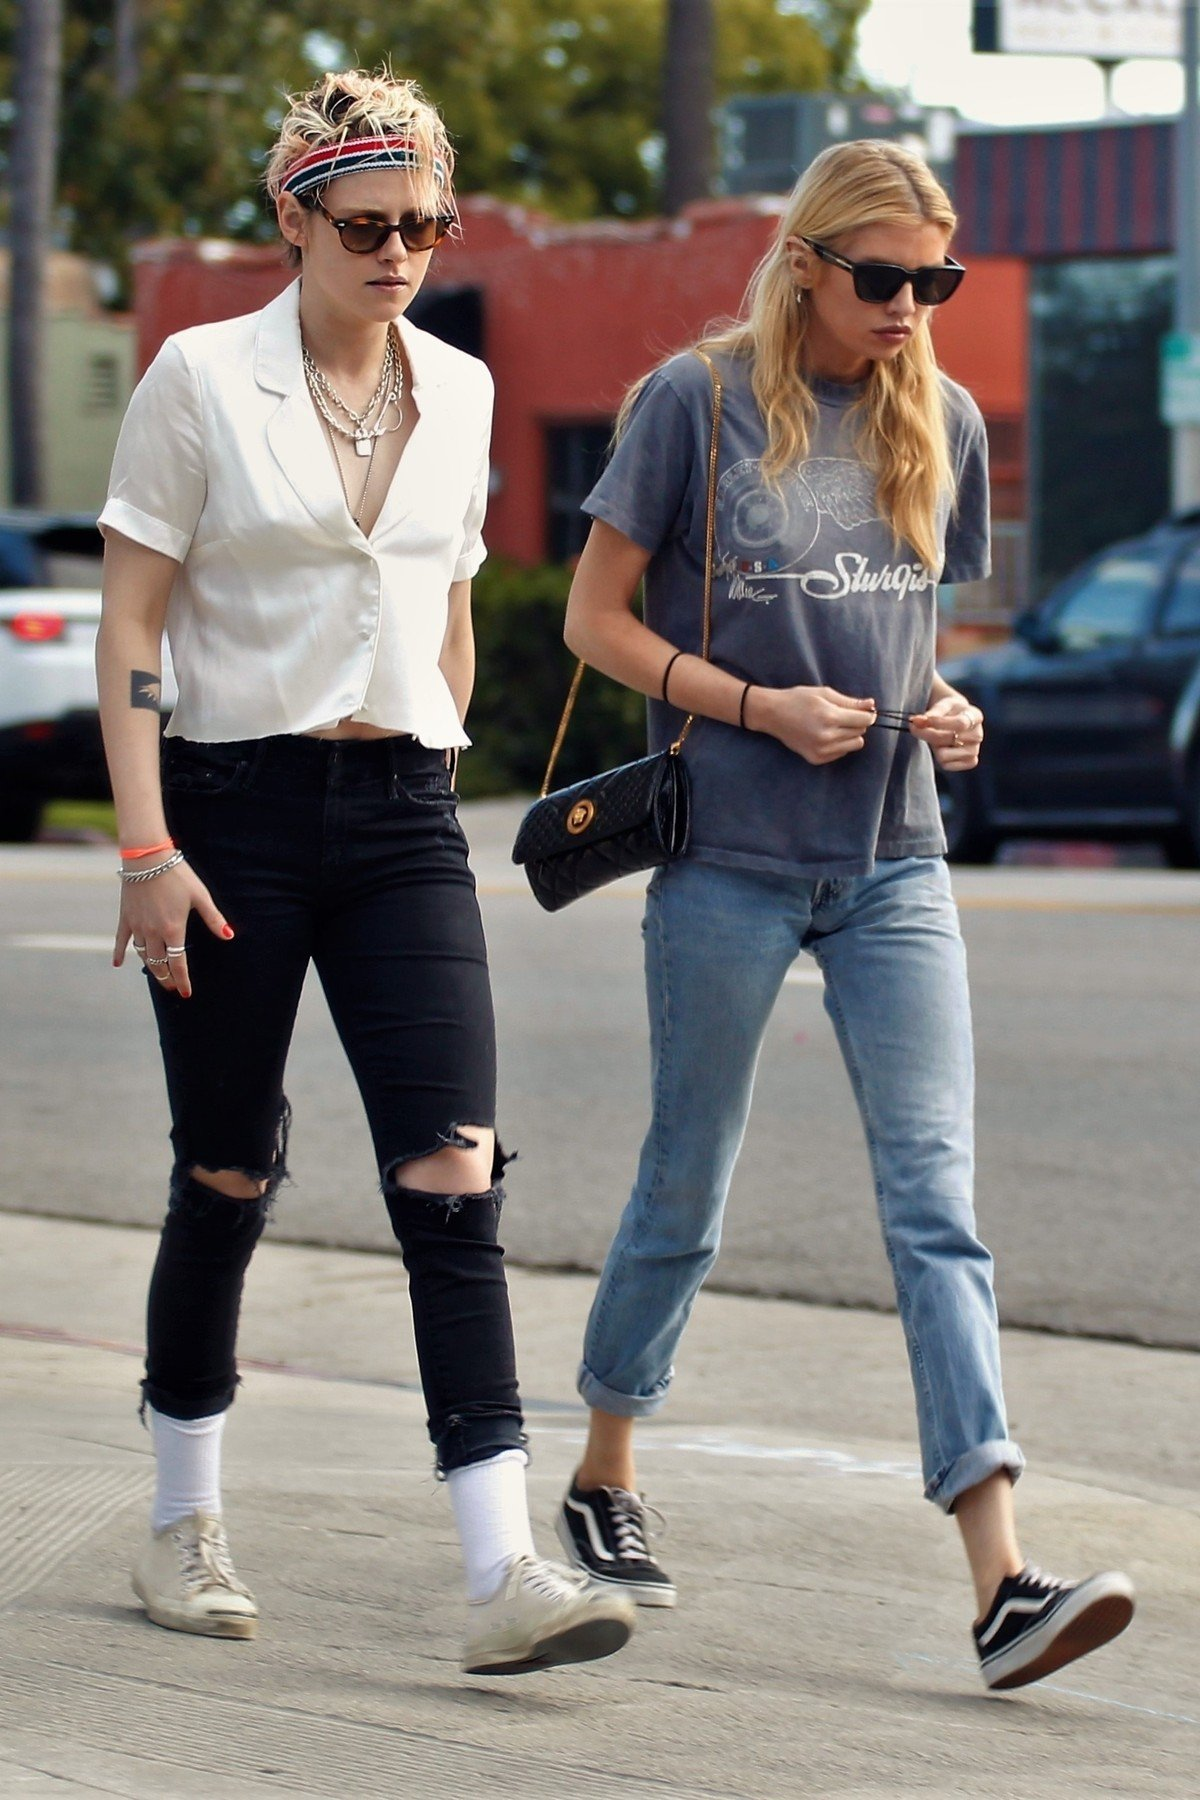 Los Feliz, CA  - *EXCLUSIVE*  - Kristen Stewart steps out on a dinner date with ex girlfriend Stella Maxwell. The pair went on a low key date, they sat very close together and afterwards headed to Kristen's home in Los Feliz. Kristen was dating Sara Dinkin but it now looks like she might be rekindling her relationship with Stella.  Pictured: Kristen Stewart, Stella Maxwell    *UK Clients - Pictures Containing Children Please Pixelate Face Prior To Publication*, Image: 435093180, License: Rights-managed, Restrictions: , Model Release: no, Credit line: Profimedia, Backgrid USA